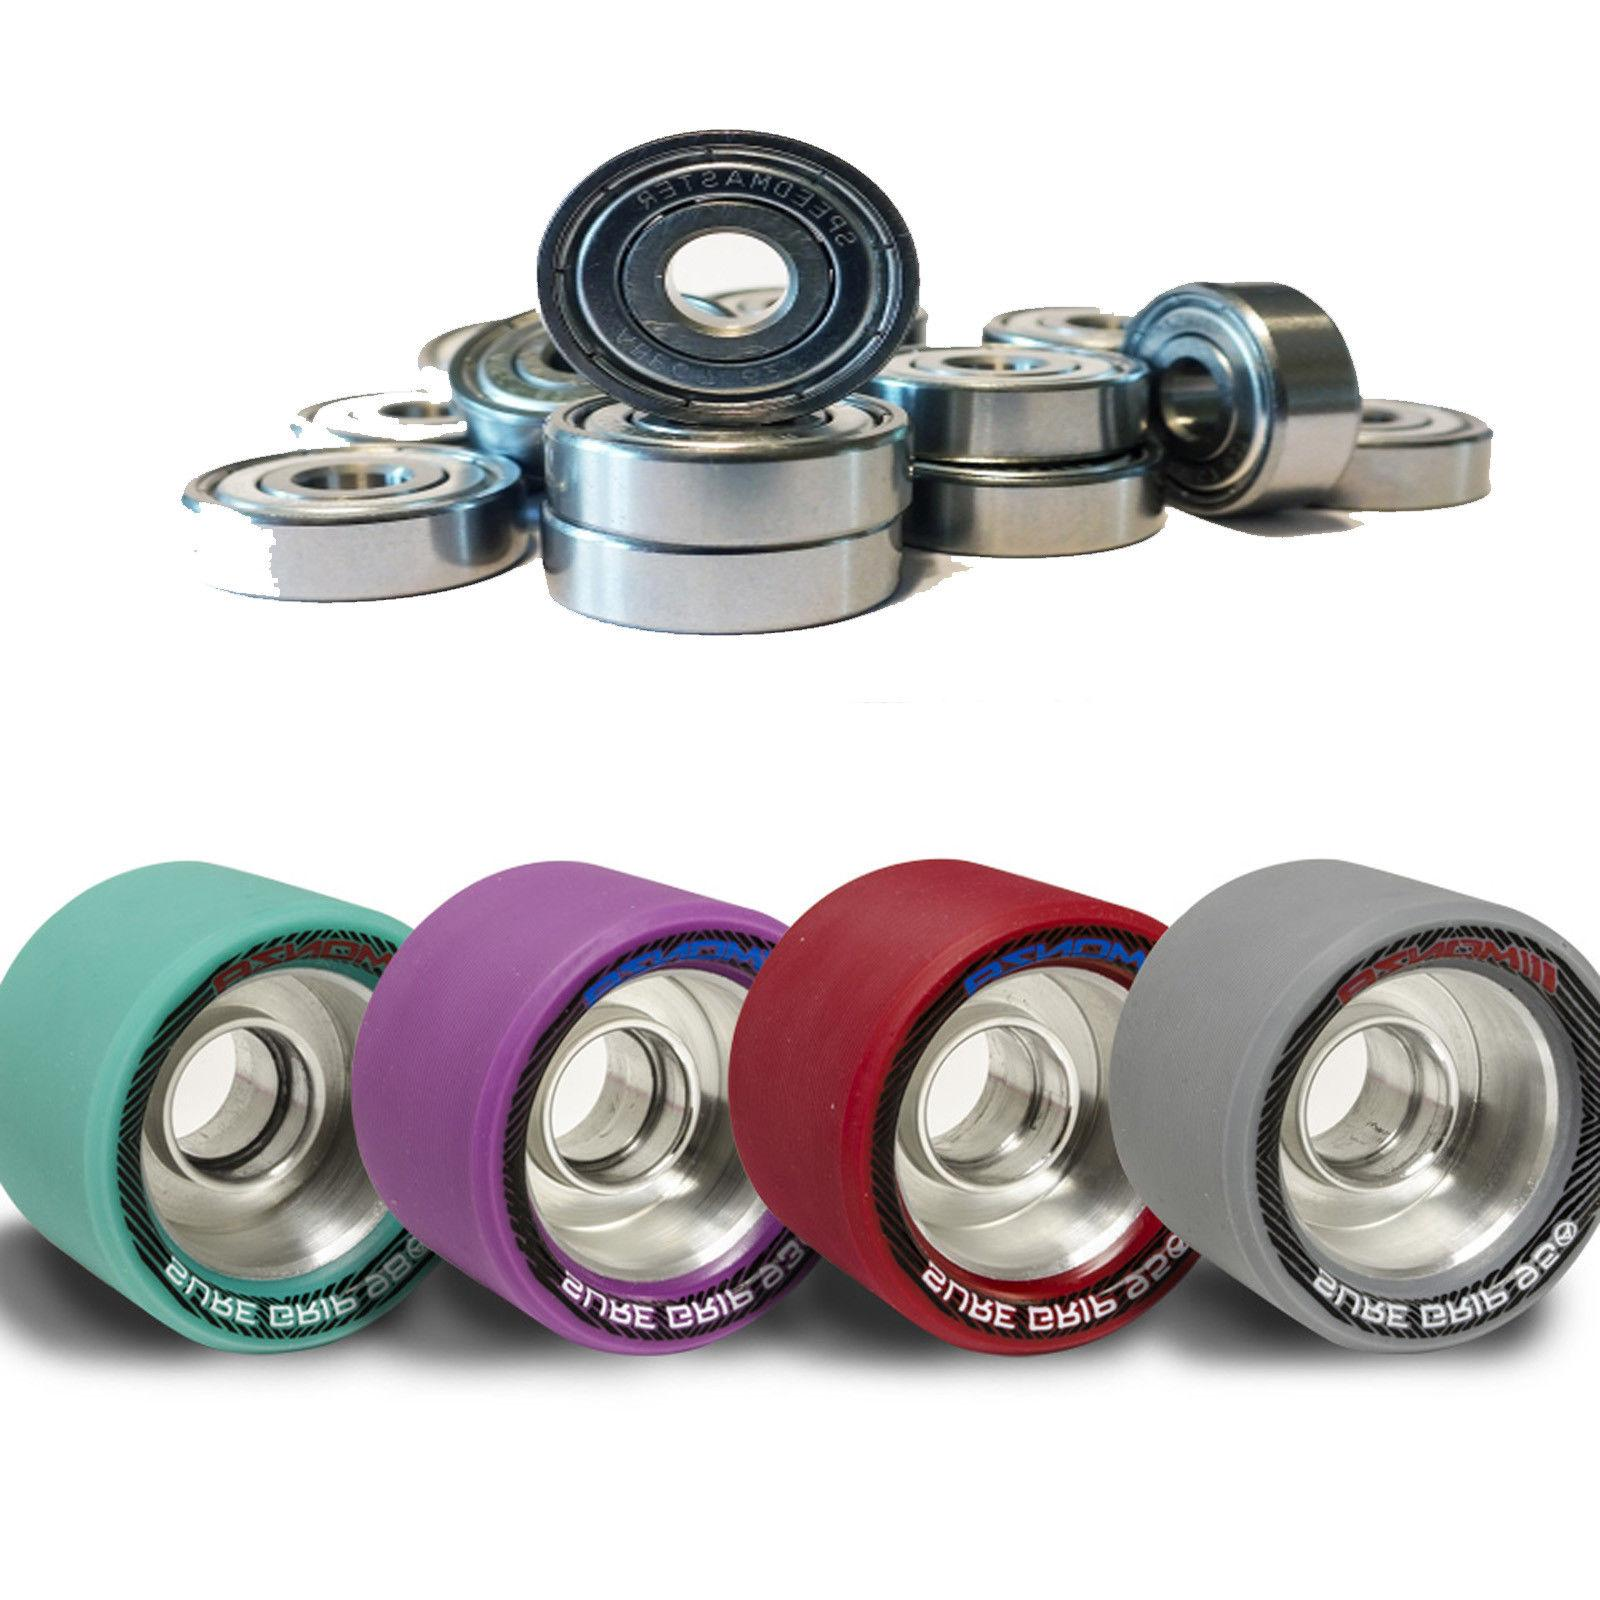 roller skate wheels with speed master abec